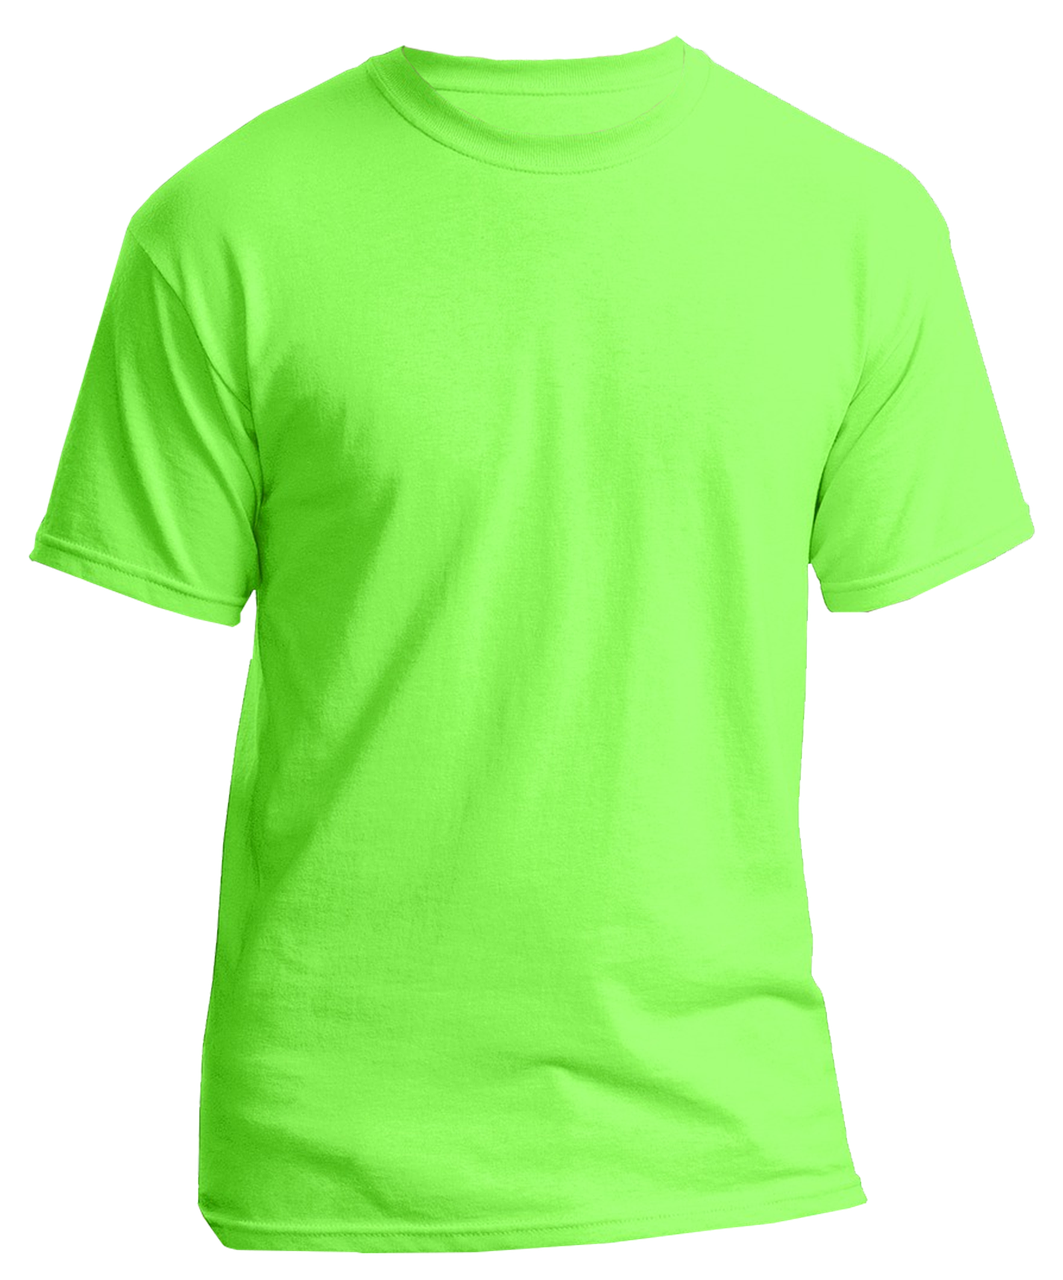 blank,tshirt,front,clothing,apparel,t-shirt,plain,free pictures, free photos, free images, royalty free, free illustrations, public domain